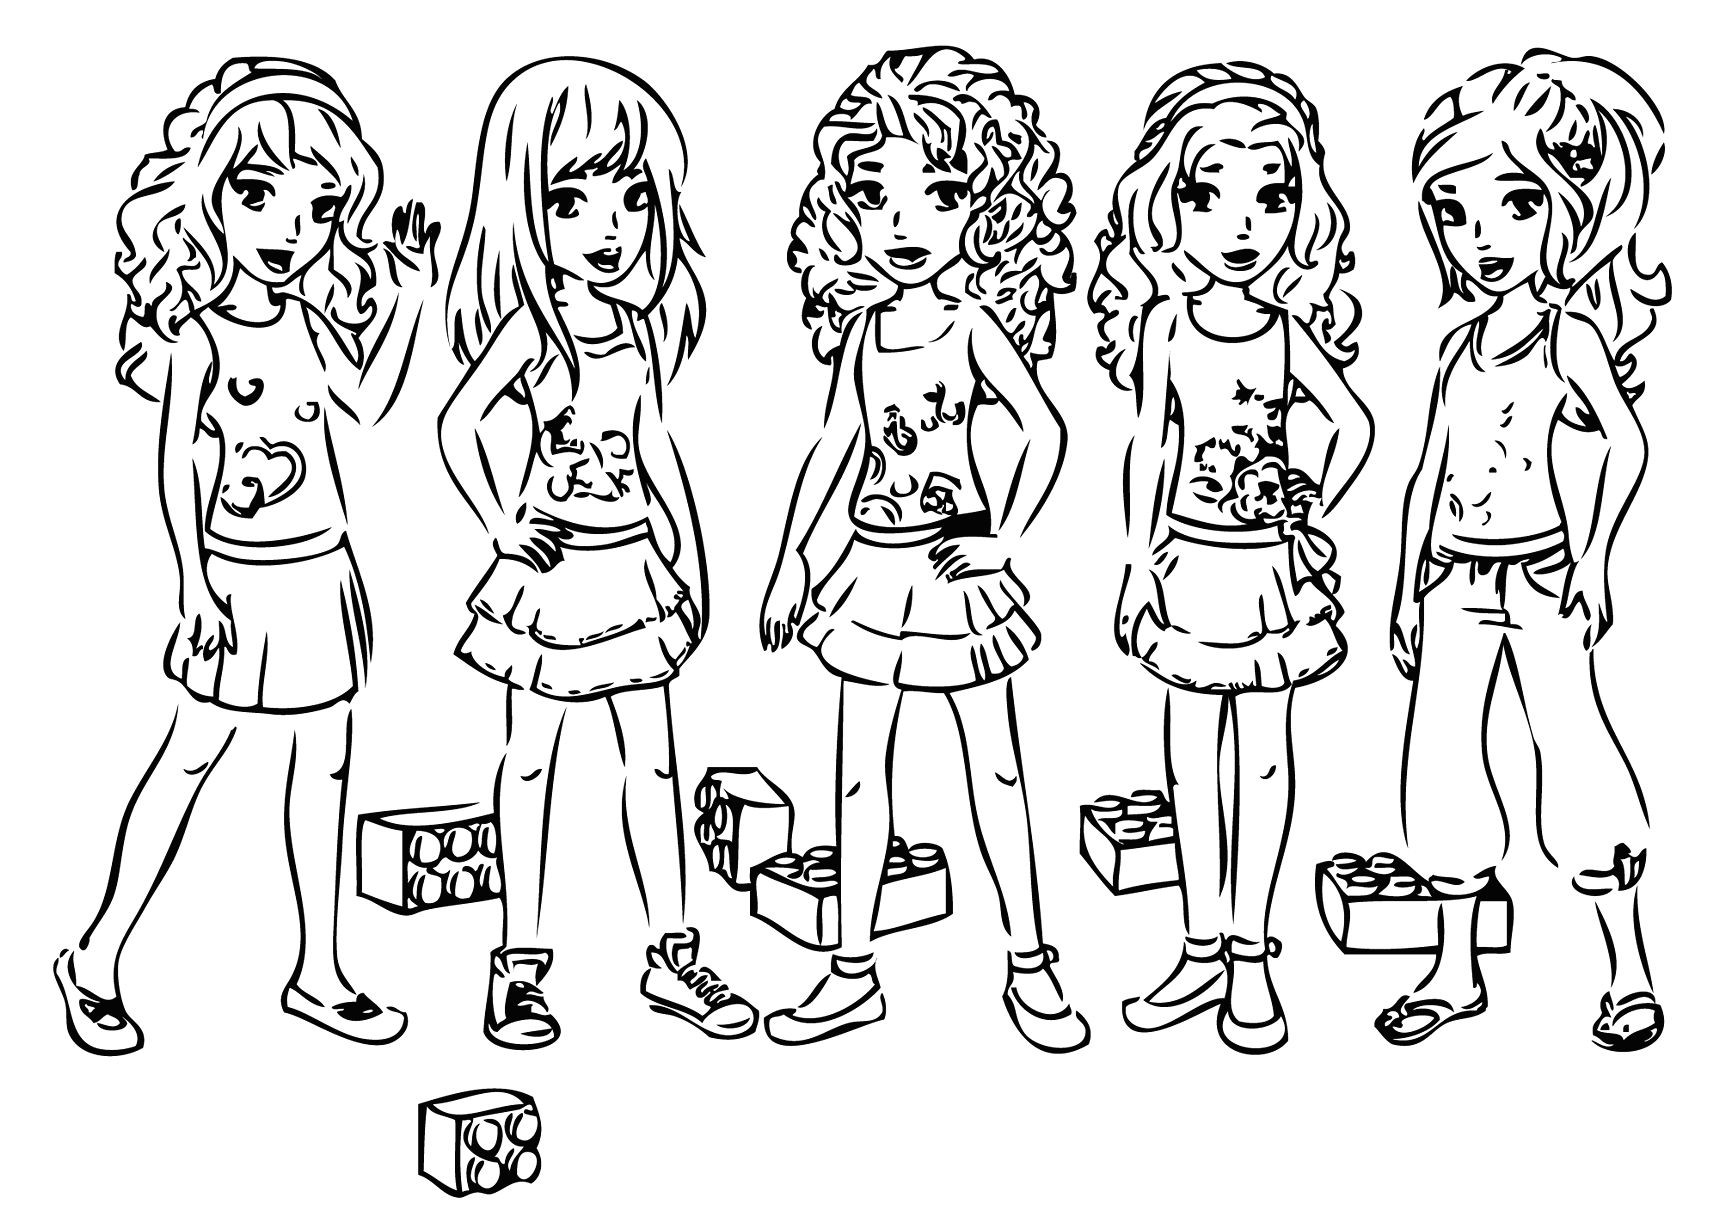 lego girl coloring lego girl coloring page at getcoloringscom free lego girl coloring 1 1